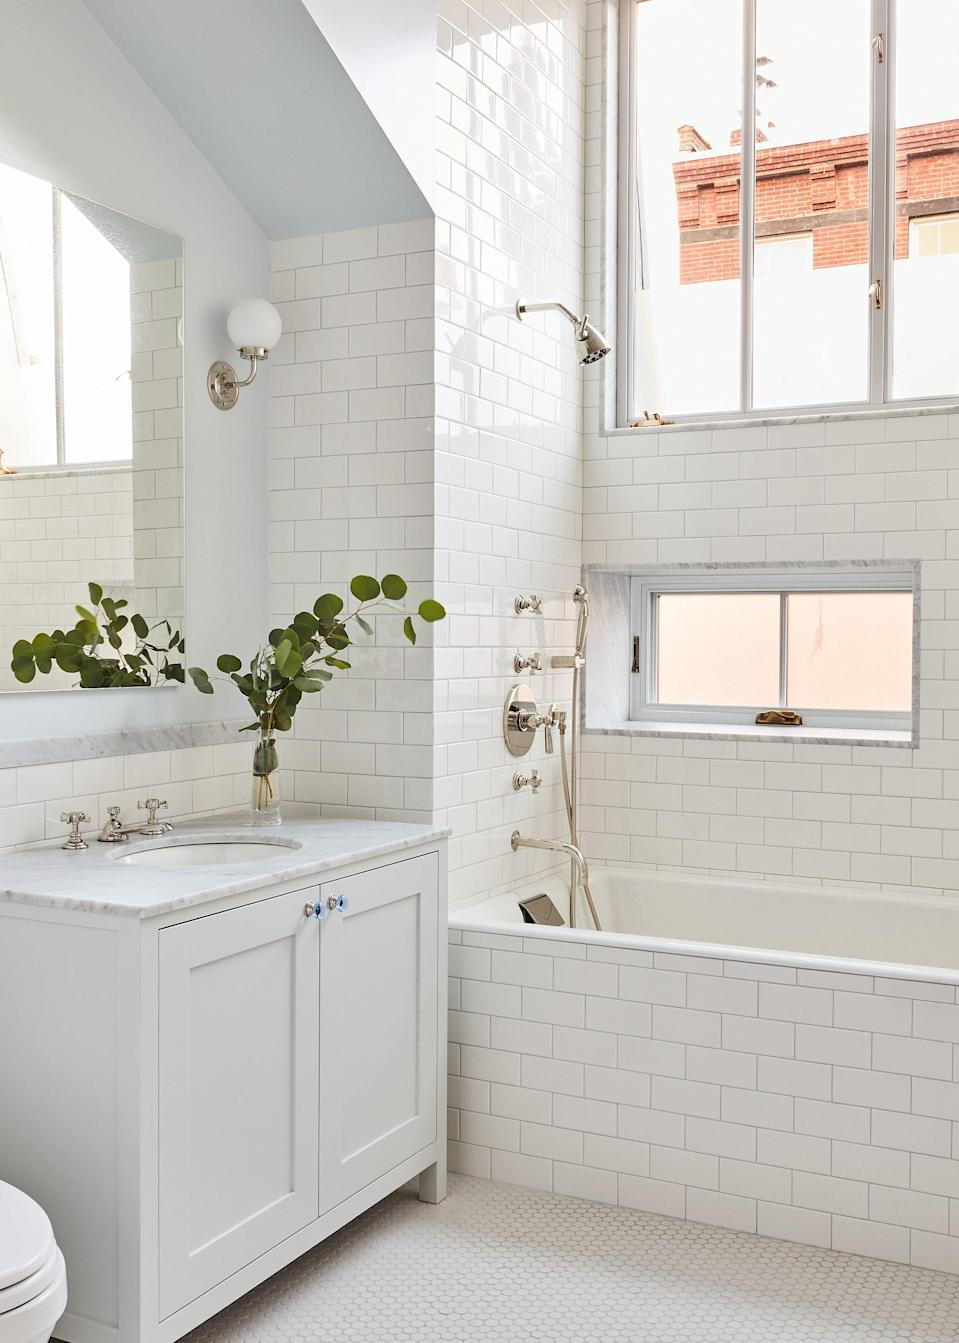 Classic subway tile and a monochromatic white color scheme keep the children's bathroom looking neat and tidy. The hardware is by E.R. Butler & Co.